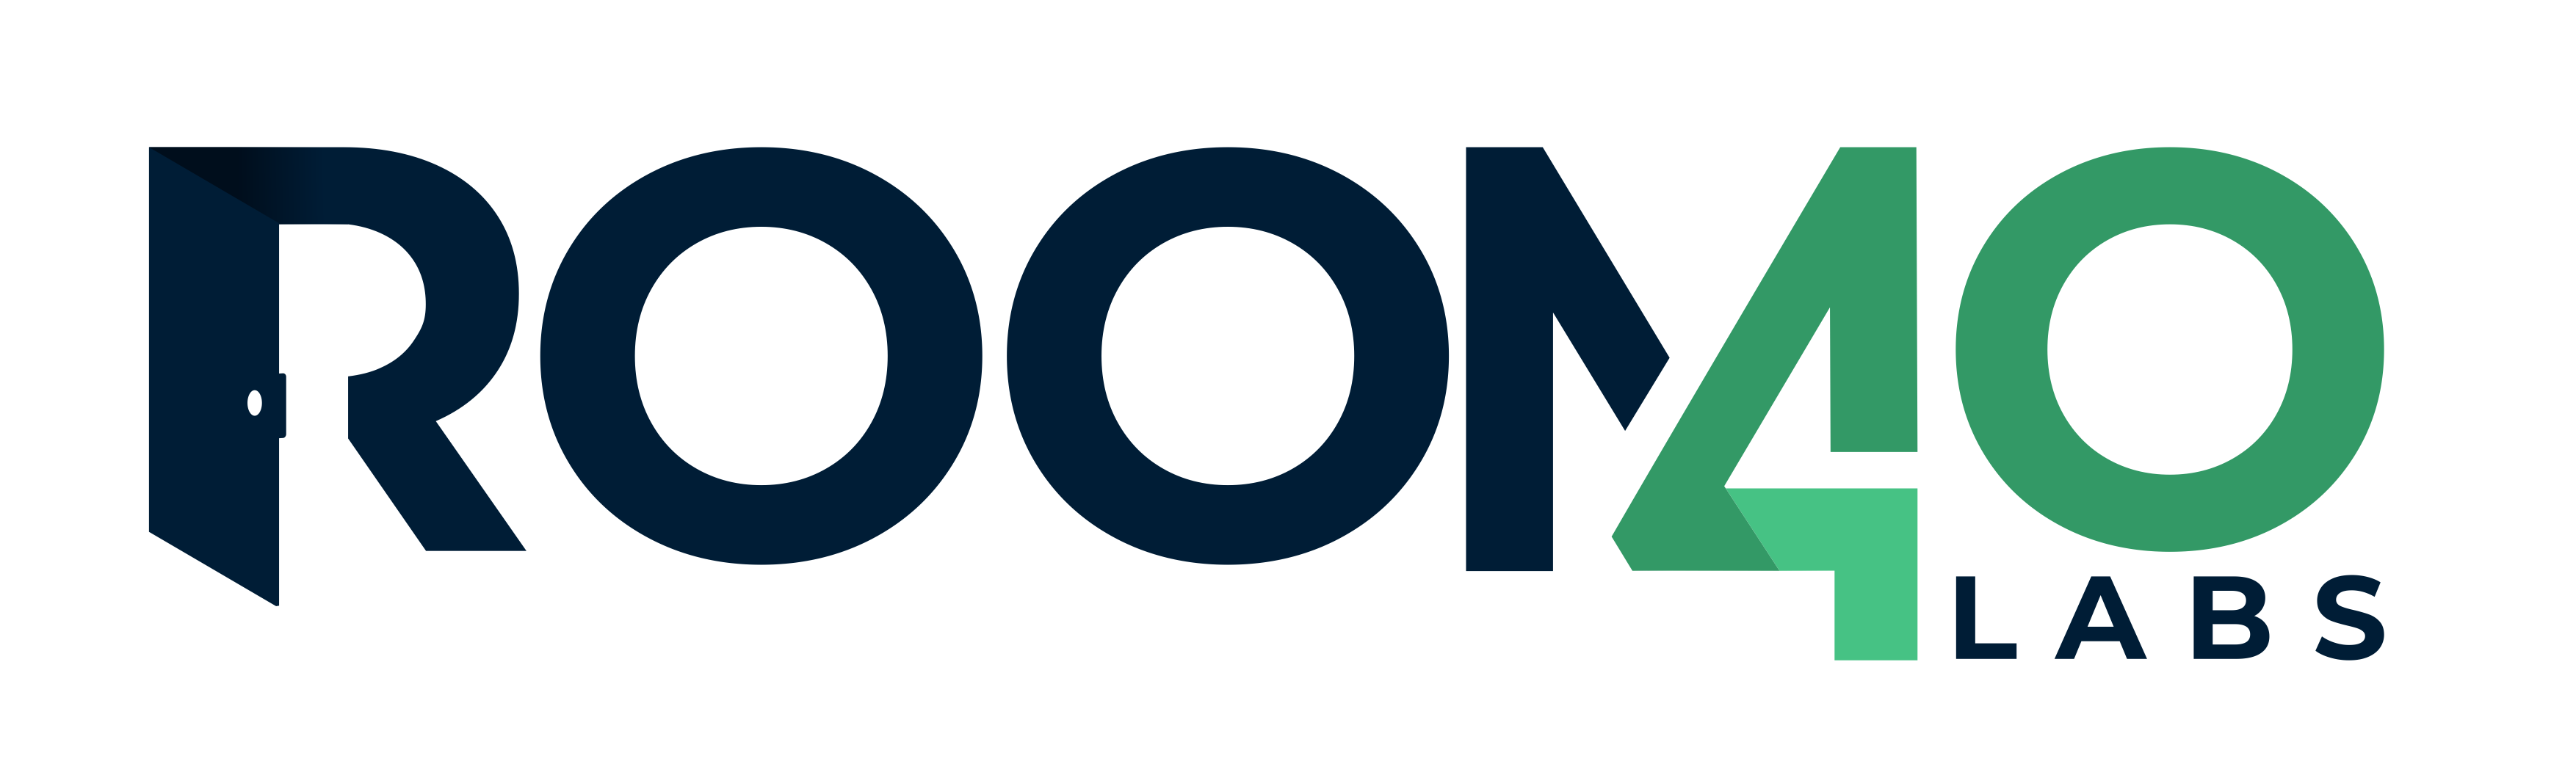 Logo of Room40 Labs